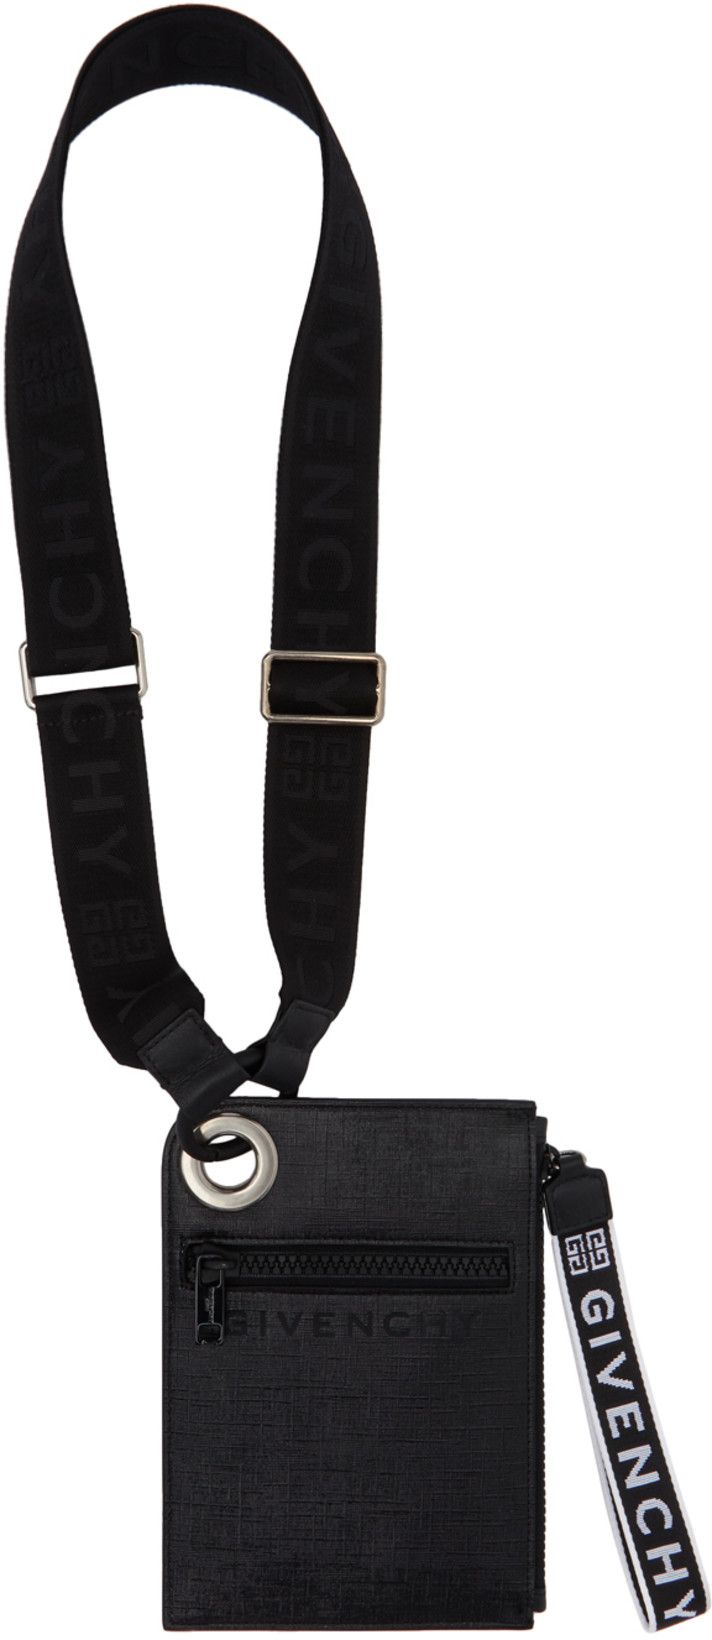 X Style with Strong Clips for Wedding Party Men Suspenders Adjustable Braces Black